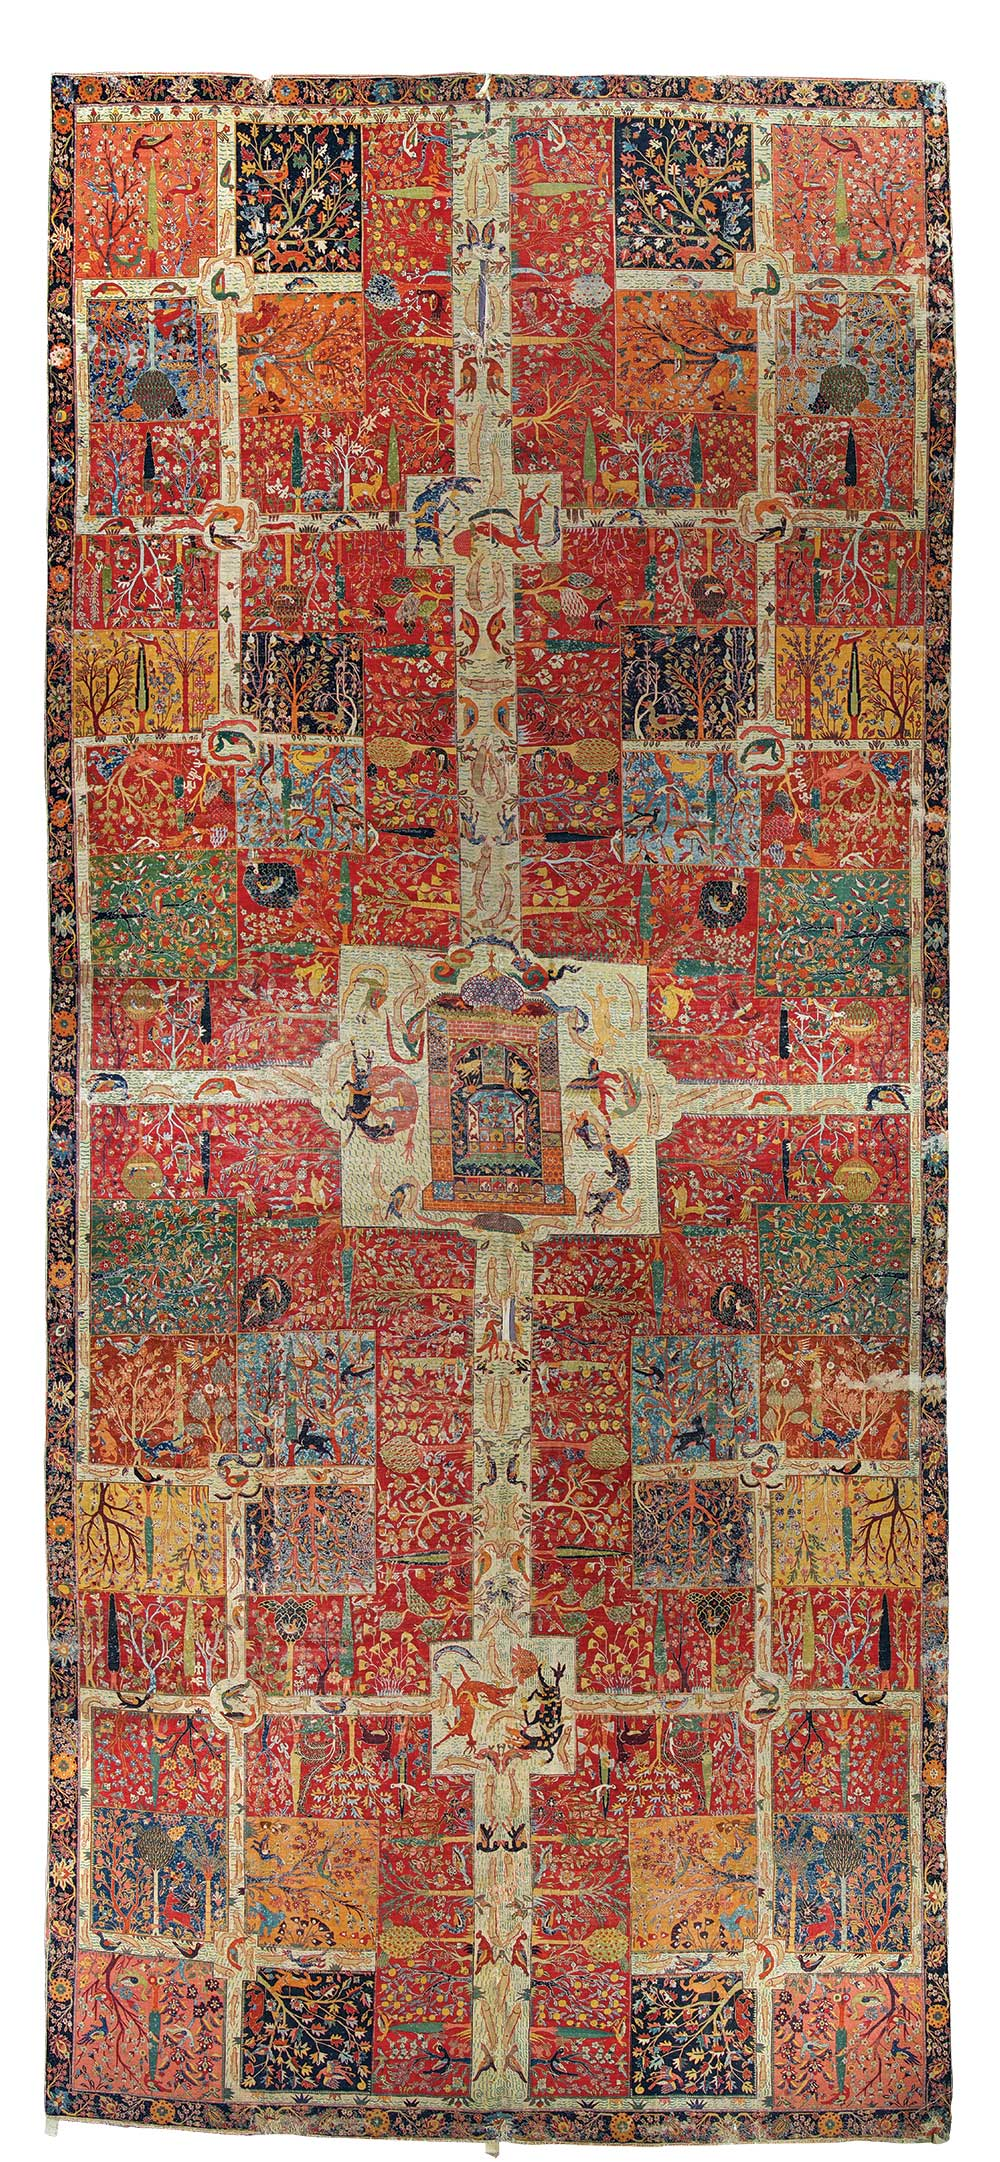 "Safavid chaharbagh carpet, Kerman, south Persia, late 16th or early 17th century. Asymmetrically wool pile, ca. 4,700 knots/dm2 (ca. 305/in2) on Z4S ivory cotton warps, alternately depressed, and 3 weft shoots of multicoloured fine wool, cotton and silk wefts, 3 shoots, 3.84 x 8.53m (12'7"" x 28'0""). According to Chandramani Singh the garden carpet was purchased in 1632 by Mirza Raja Jai Singh from Lahore for the Amber Palace (Treasuresofthe AlbertHallMuseum, Jaipur, Ahmedabad 2009, p.103). Albert Hall Museum, Jaipur, no.681/225. Photo courtesy Government of Rajasthan Department of Archaeology and Museums/Mapin Publishing"